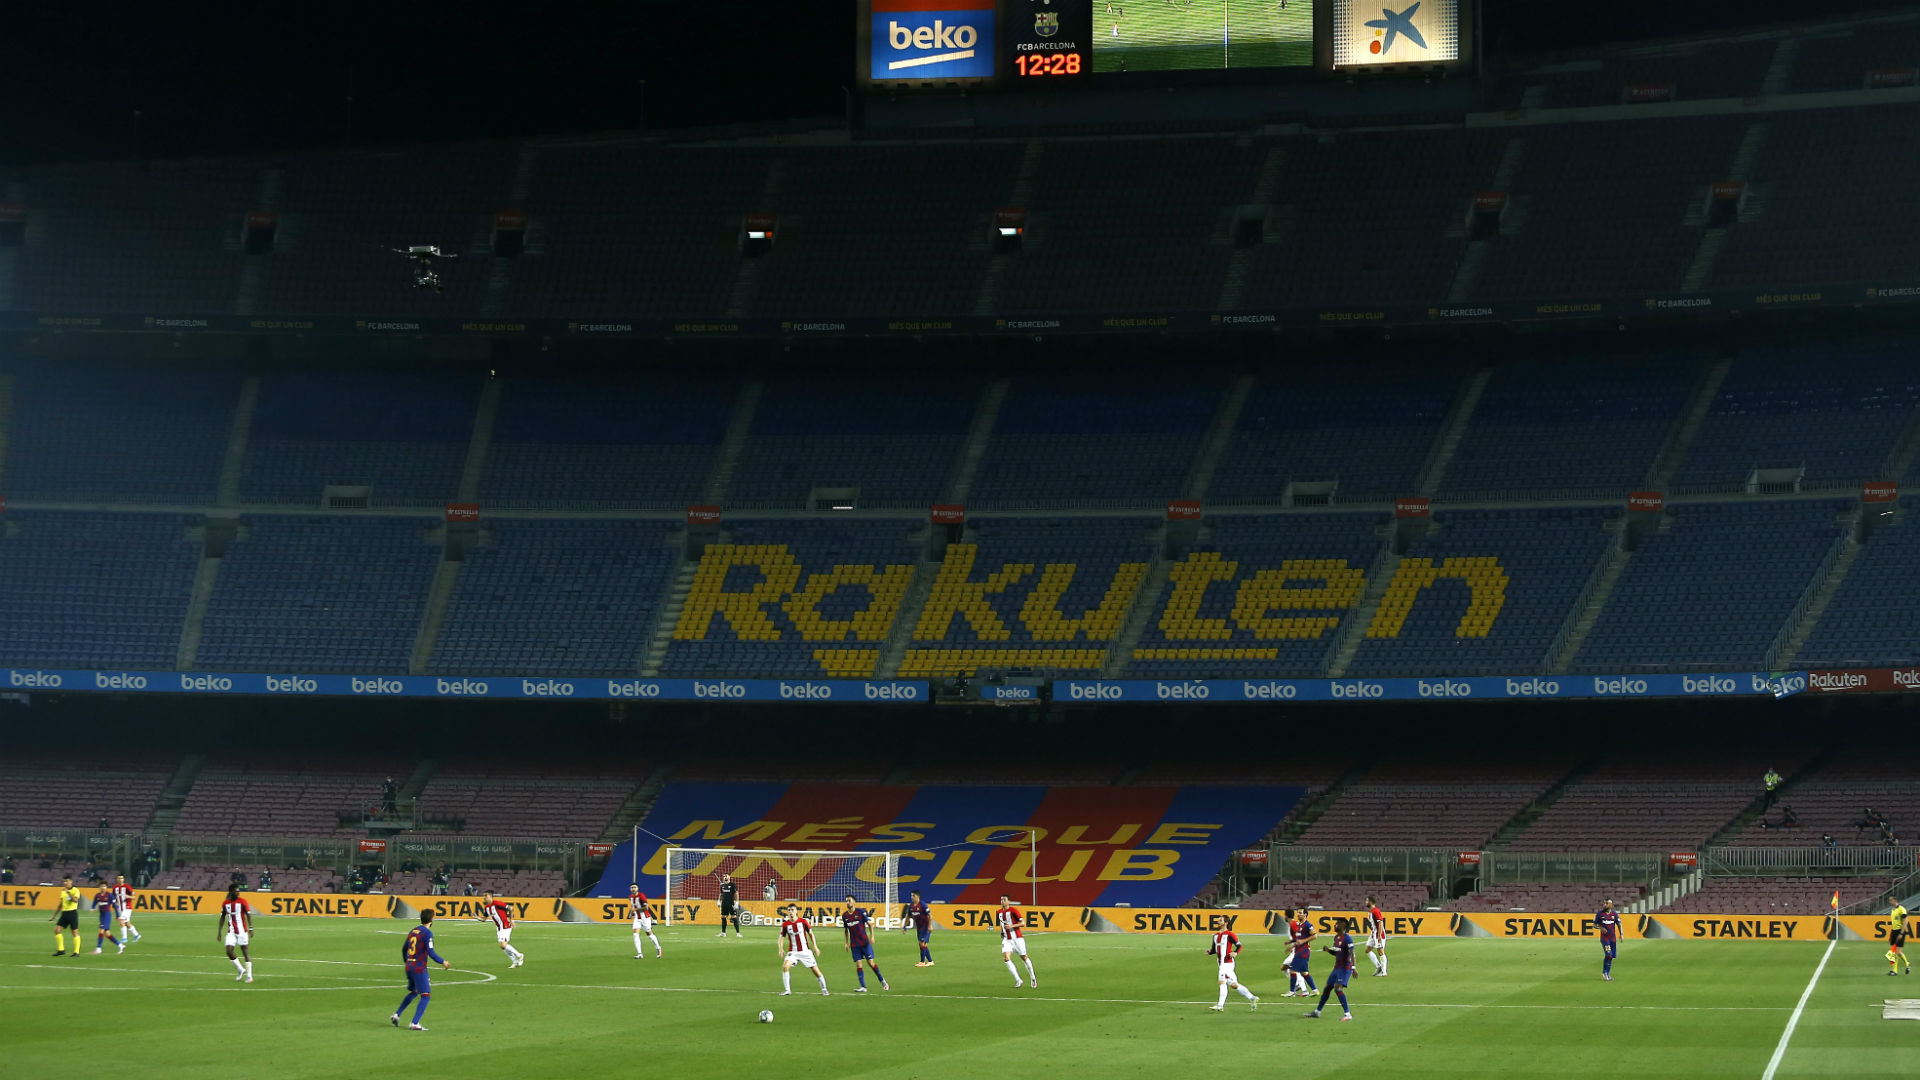 Real Madrid and Barcelona could face transfer struggle as wage budgets are slashed